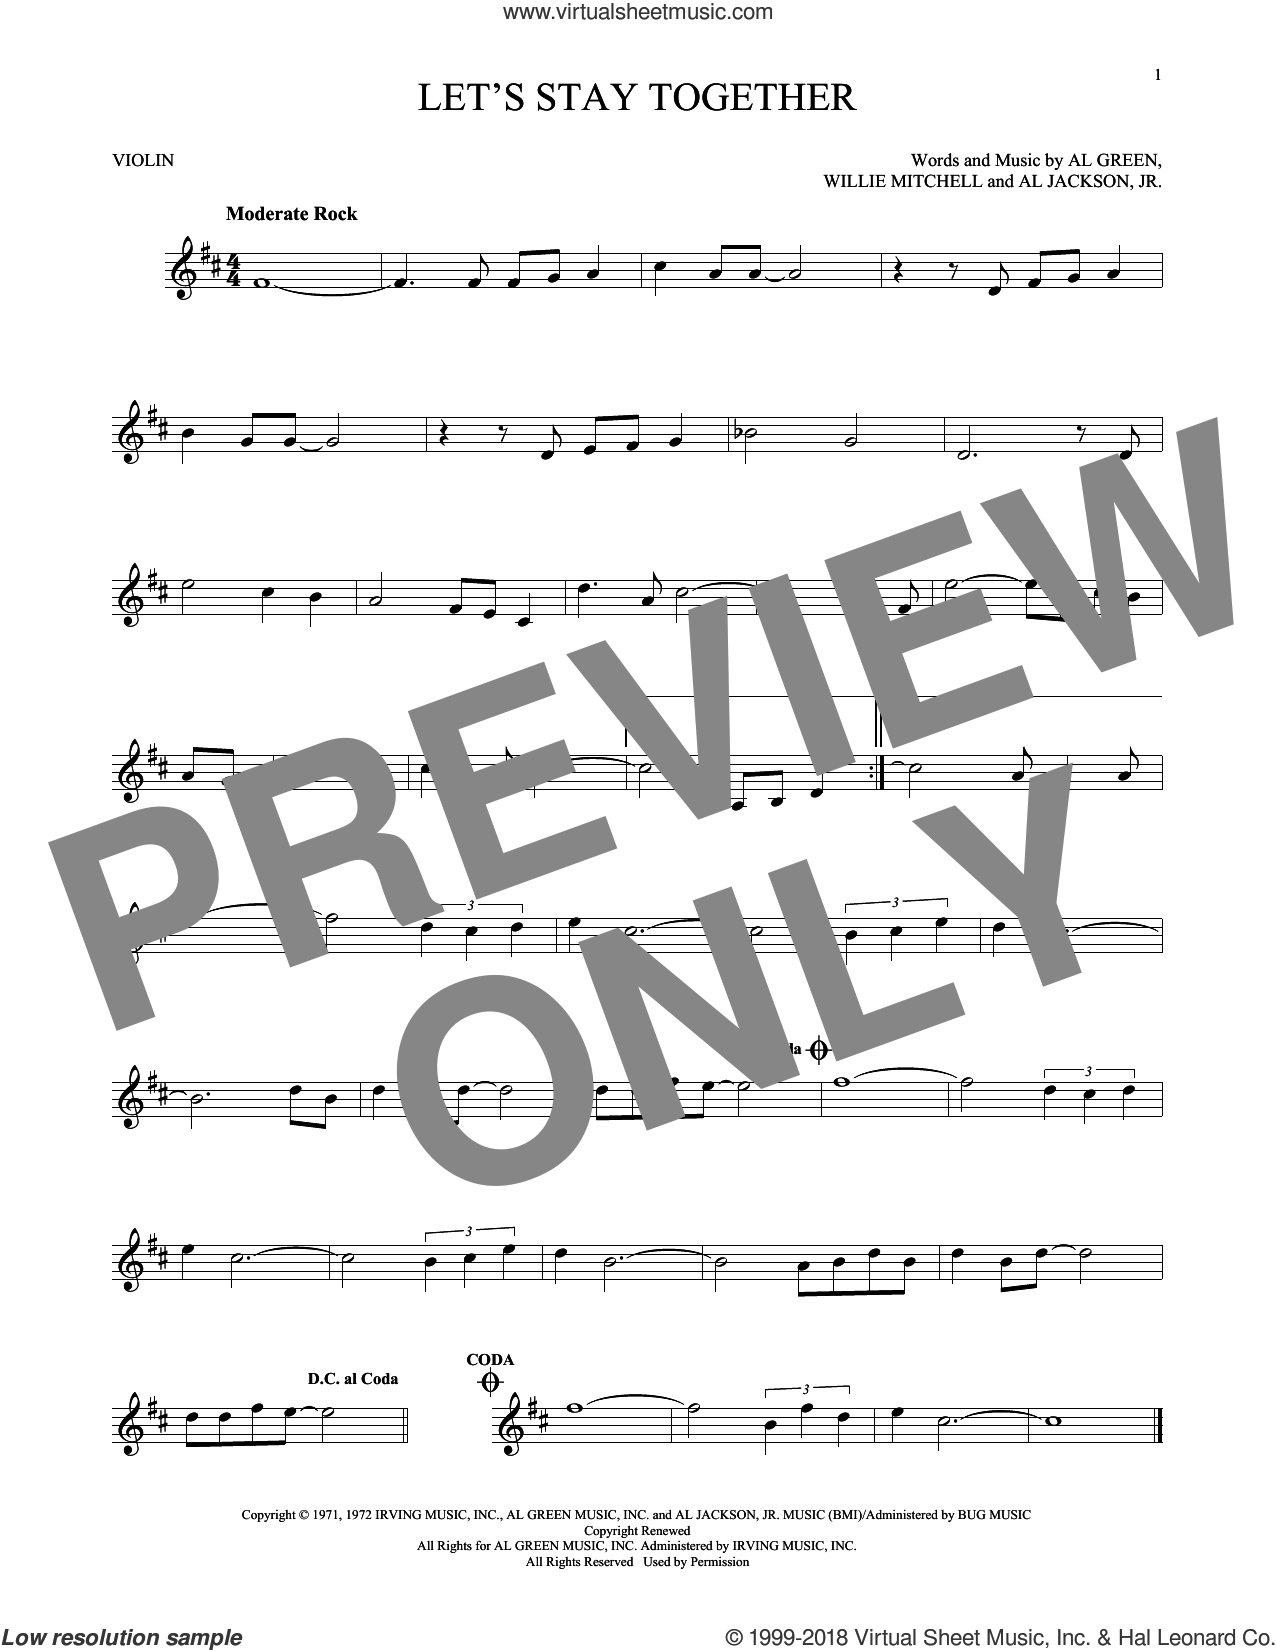 Let's Stay Together sheet music for violin solo by Al Green, Al Jackson, Jr. and Willie Mitchell, intermediate skill level